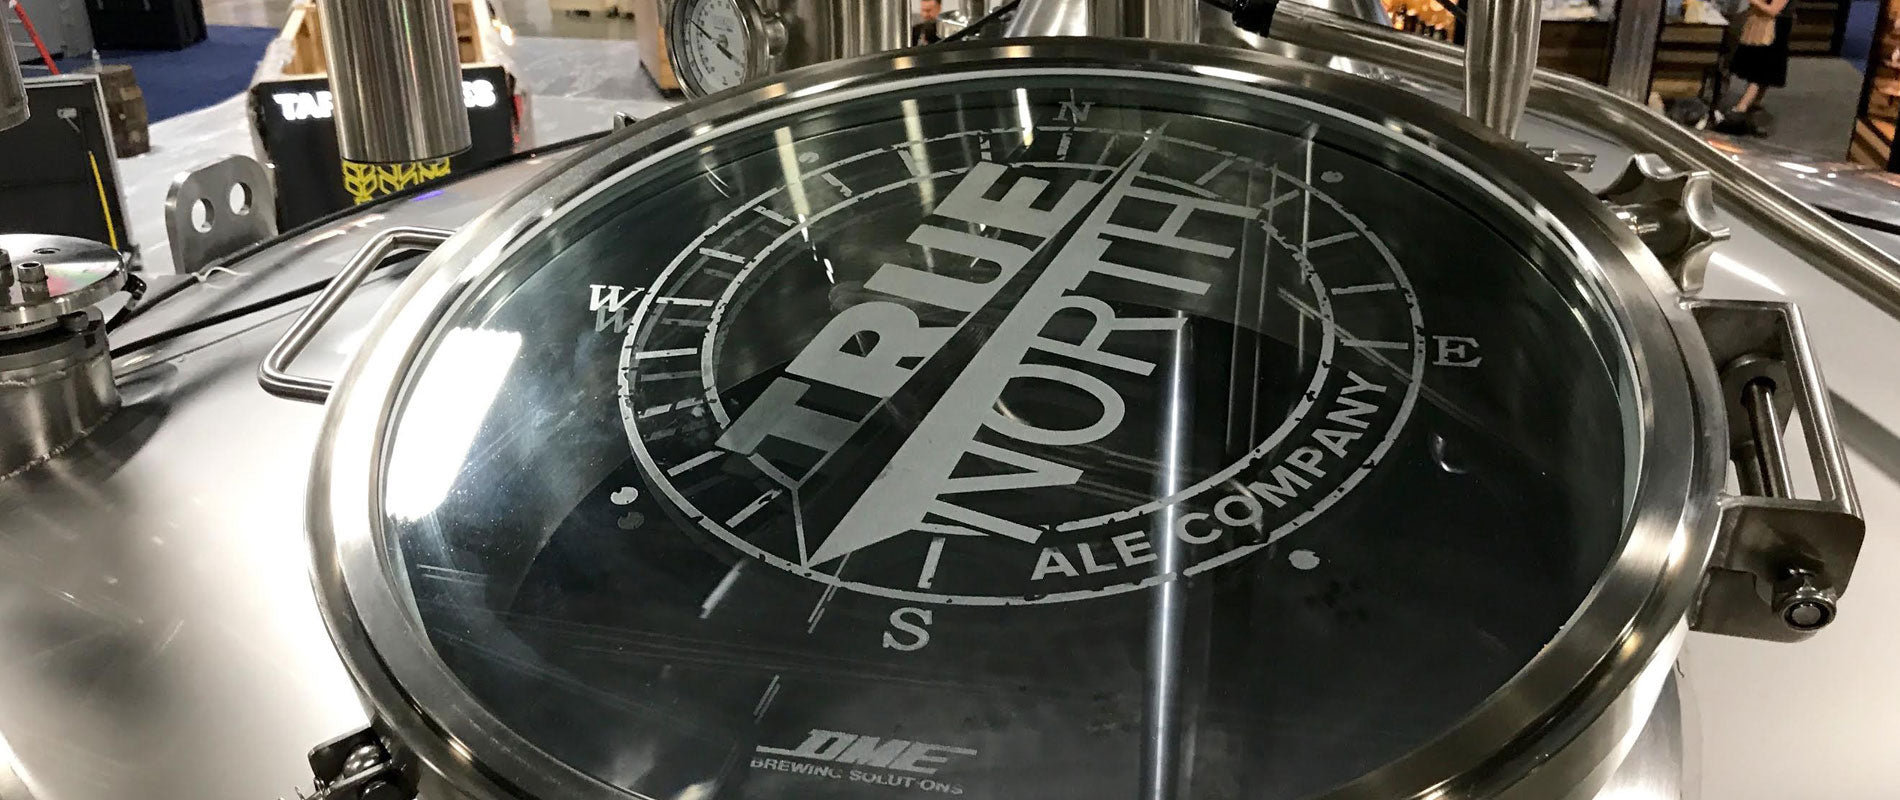 True North Ale Tank